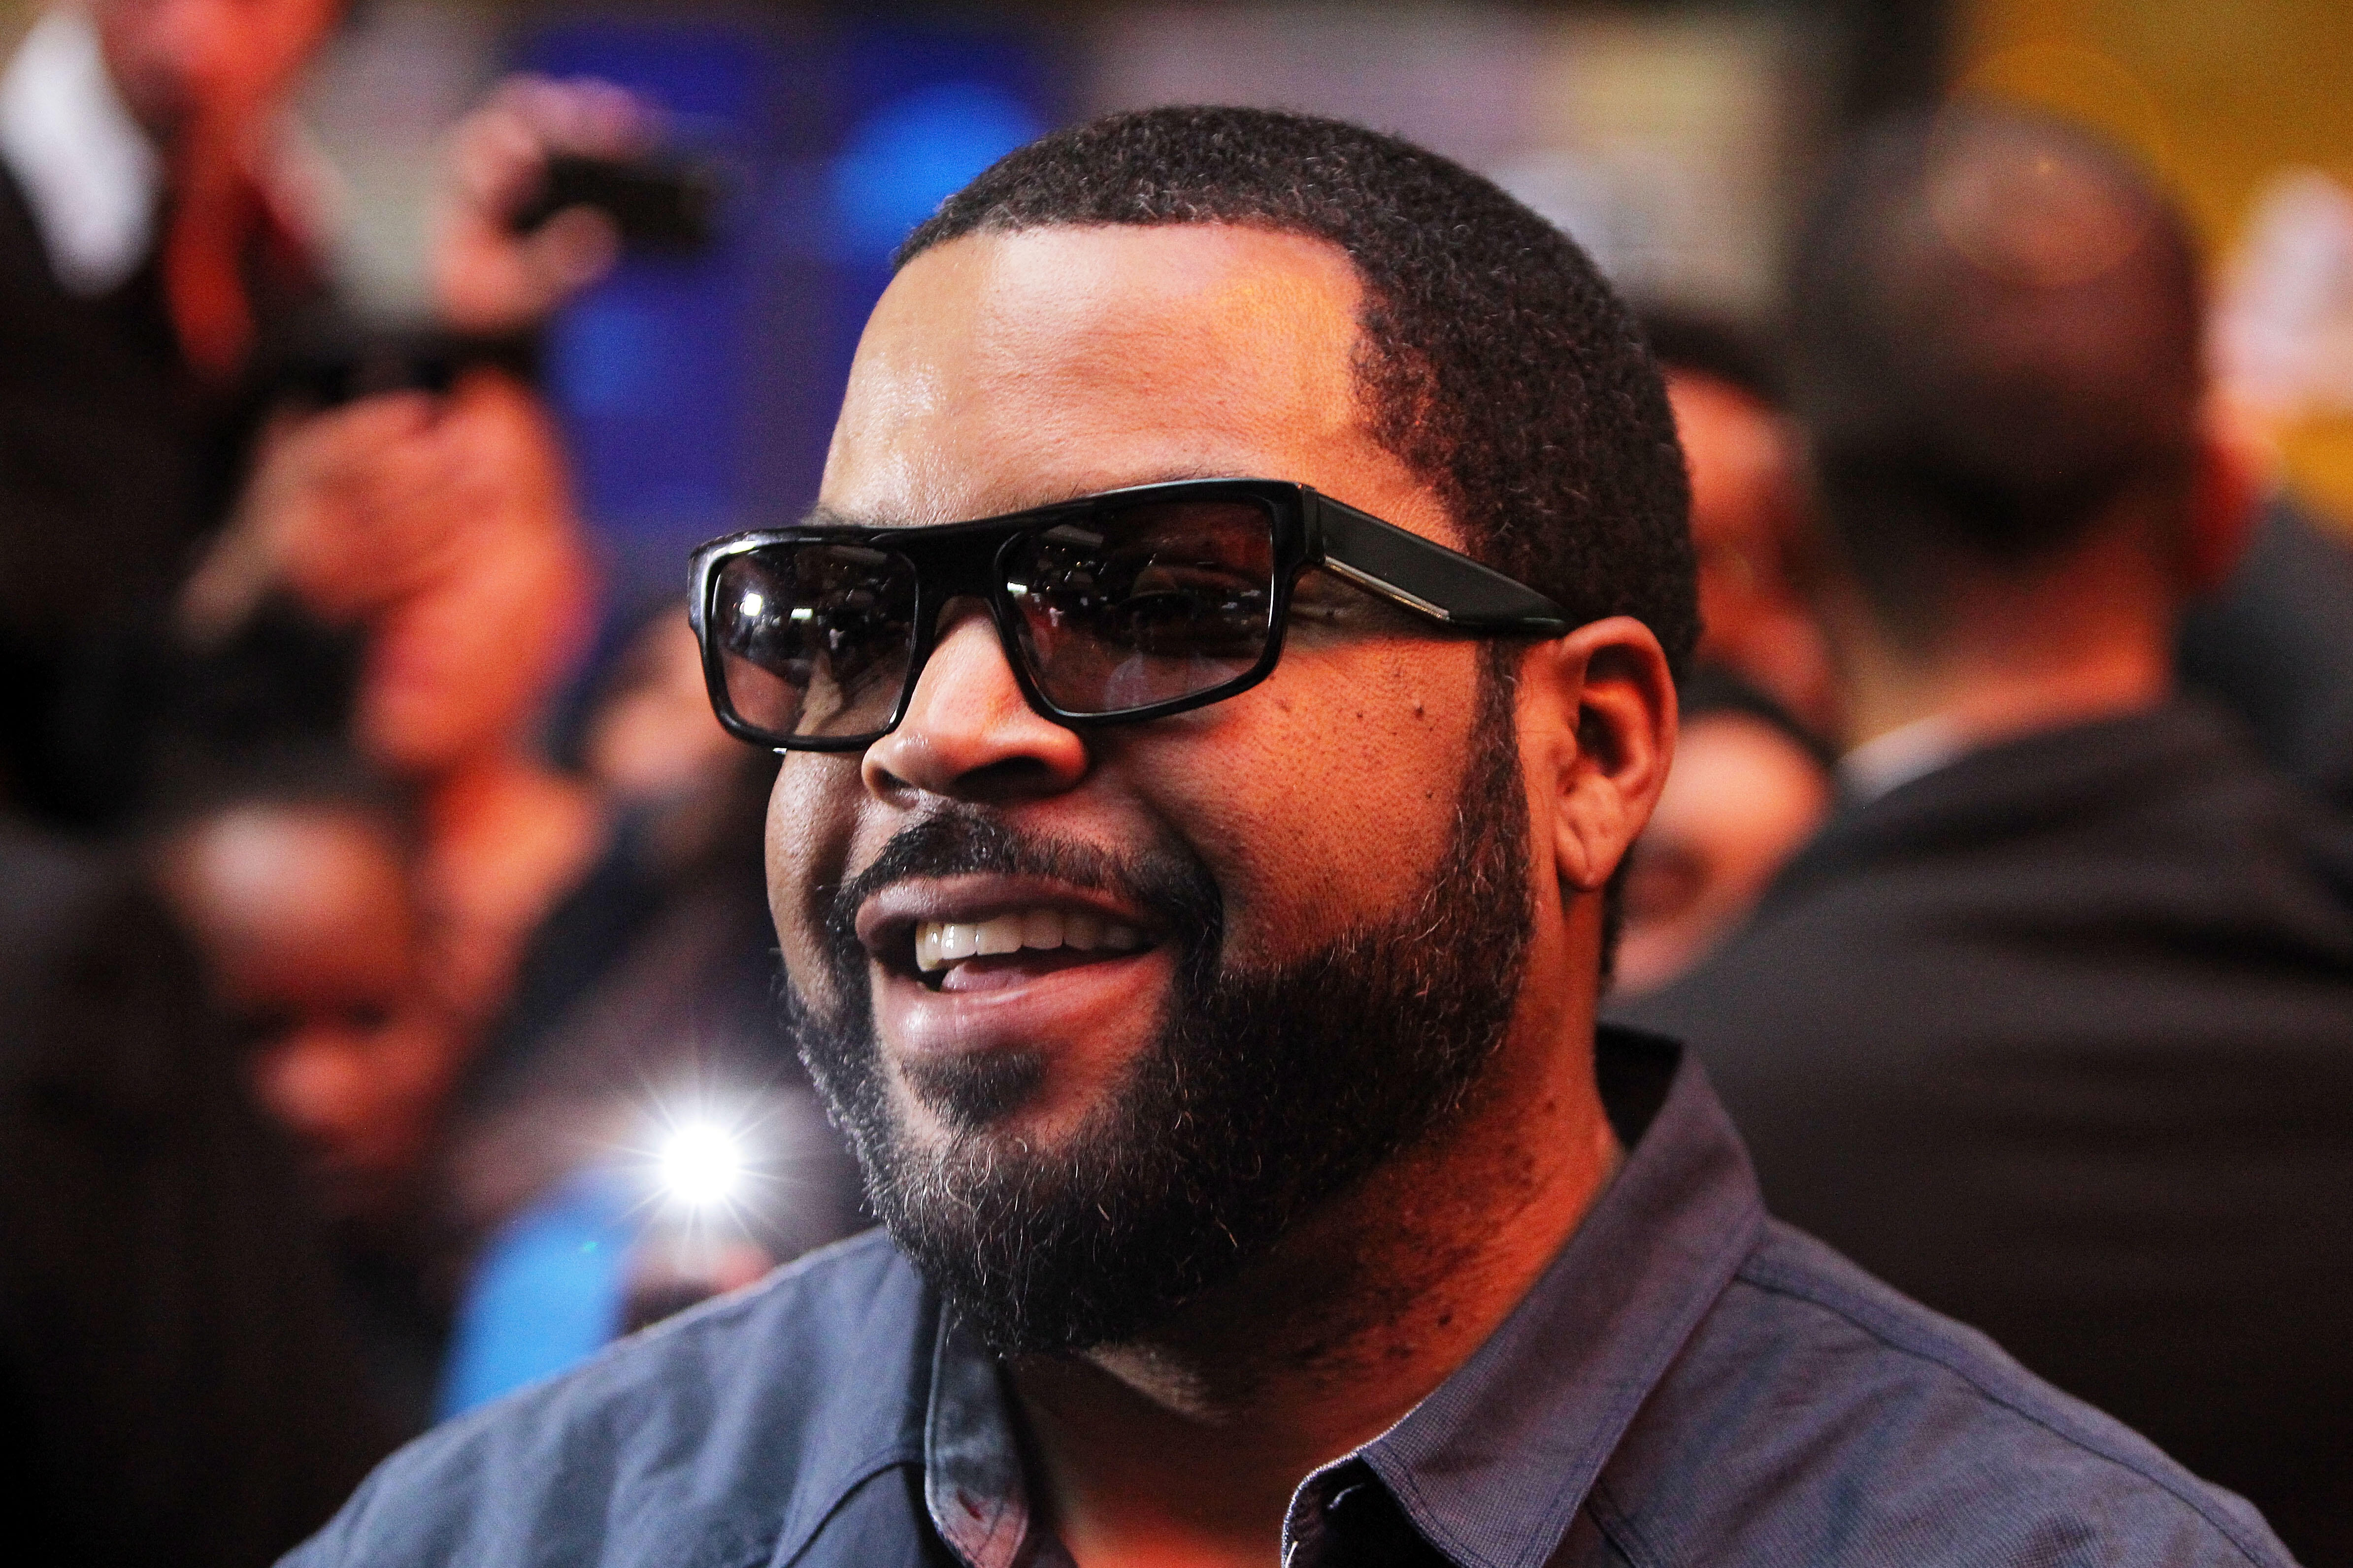 MELBOURNE, AUSTRALIA - FEBRUARY 10:  Ice Cube smiles as he arrives ahead of the Ride Along 2 Australian Premiere at Hoyts Melbourne Central on February 10, 2016 in Melbourne, Australia.  (Photo by Graham Denholm/Getty Images)